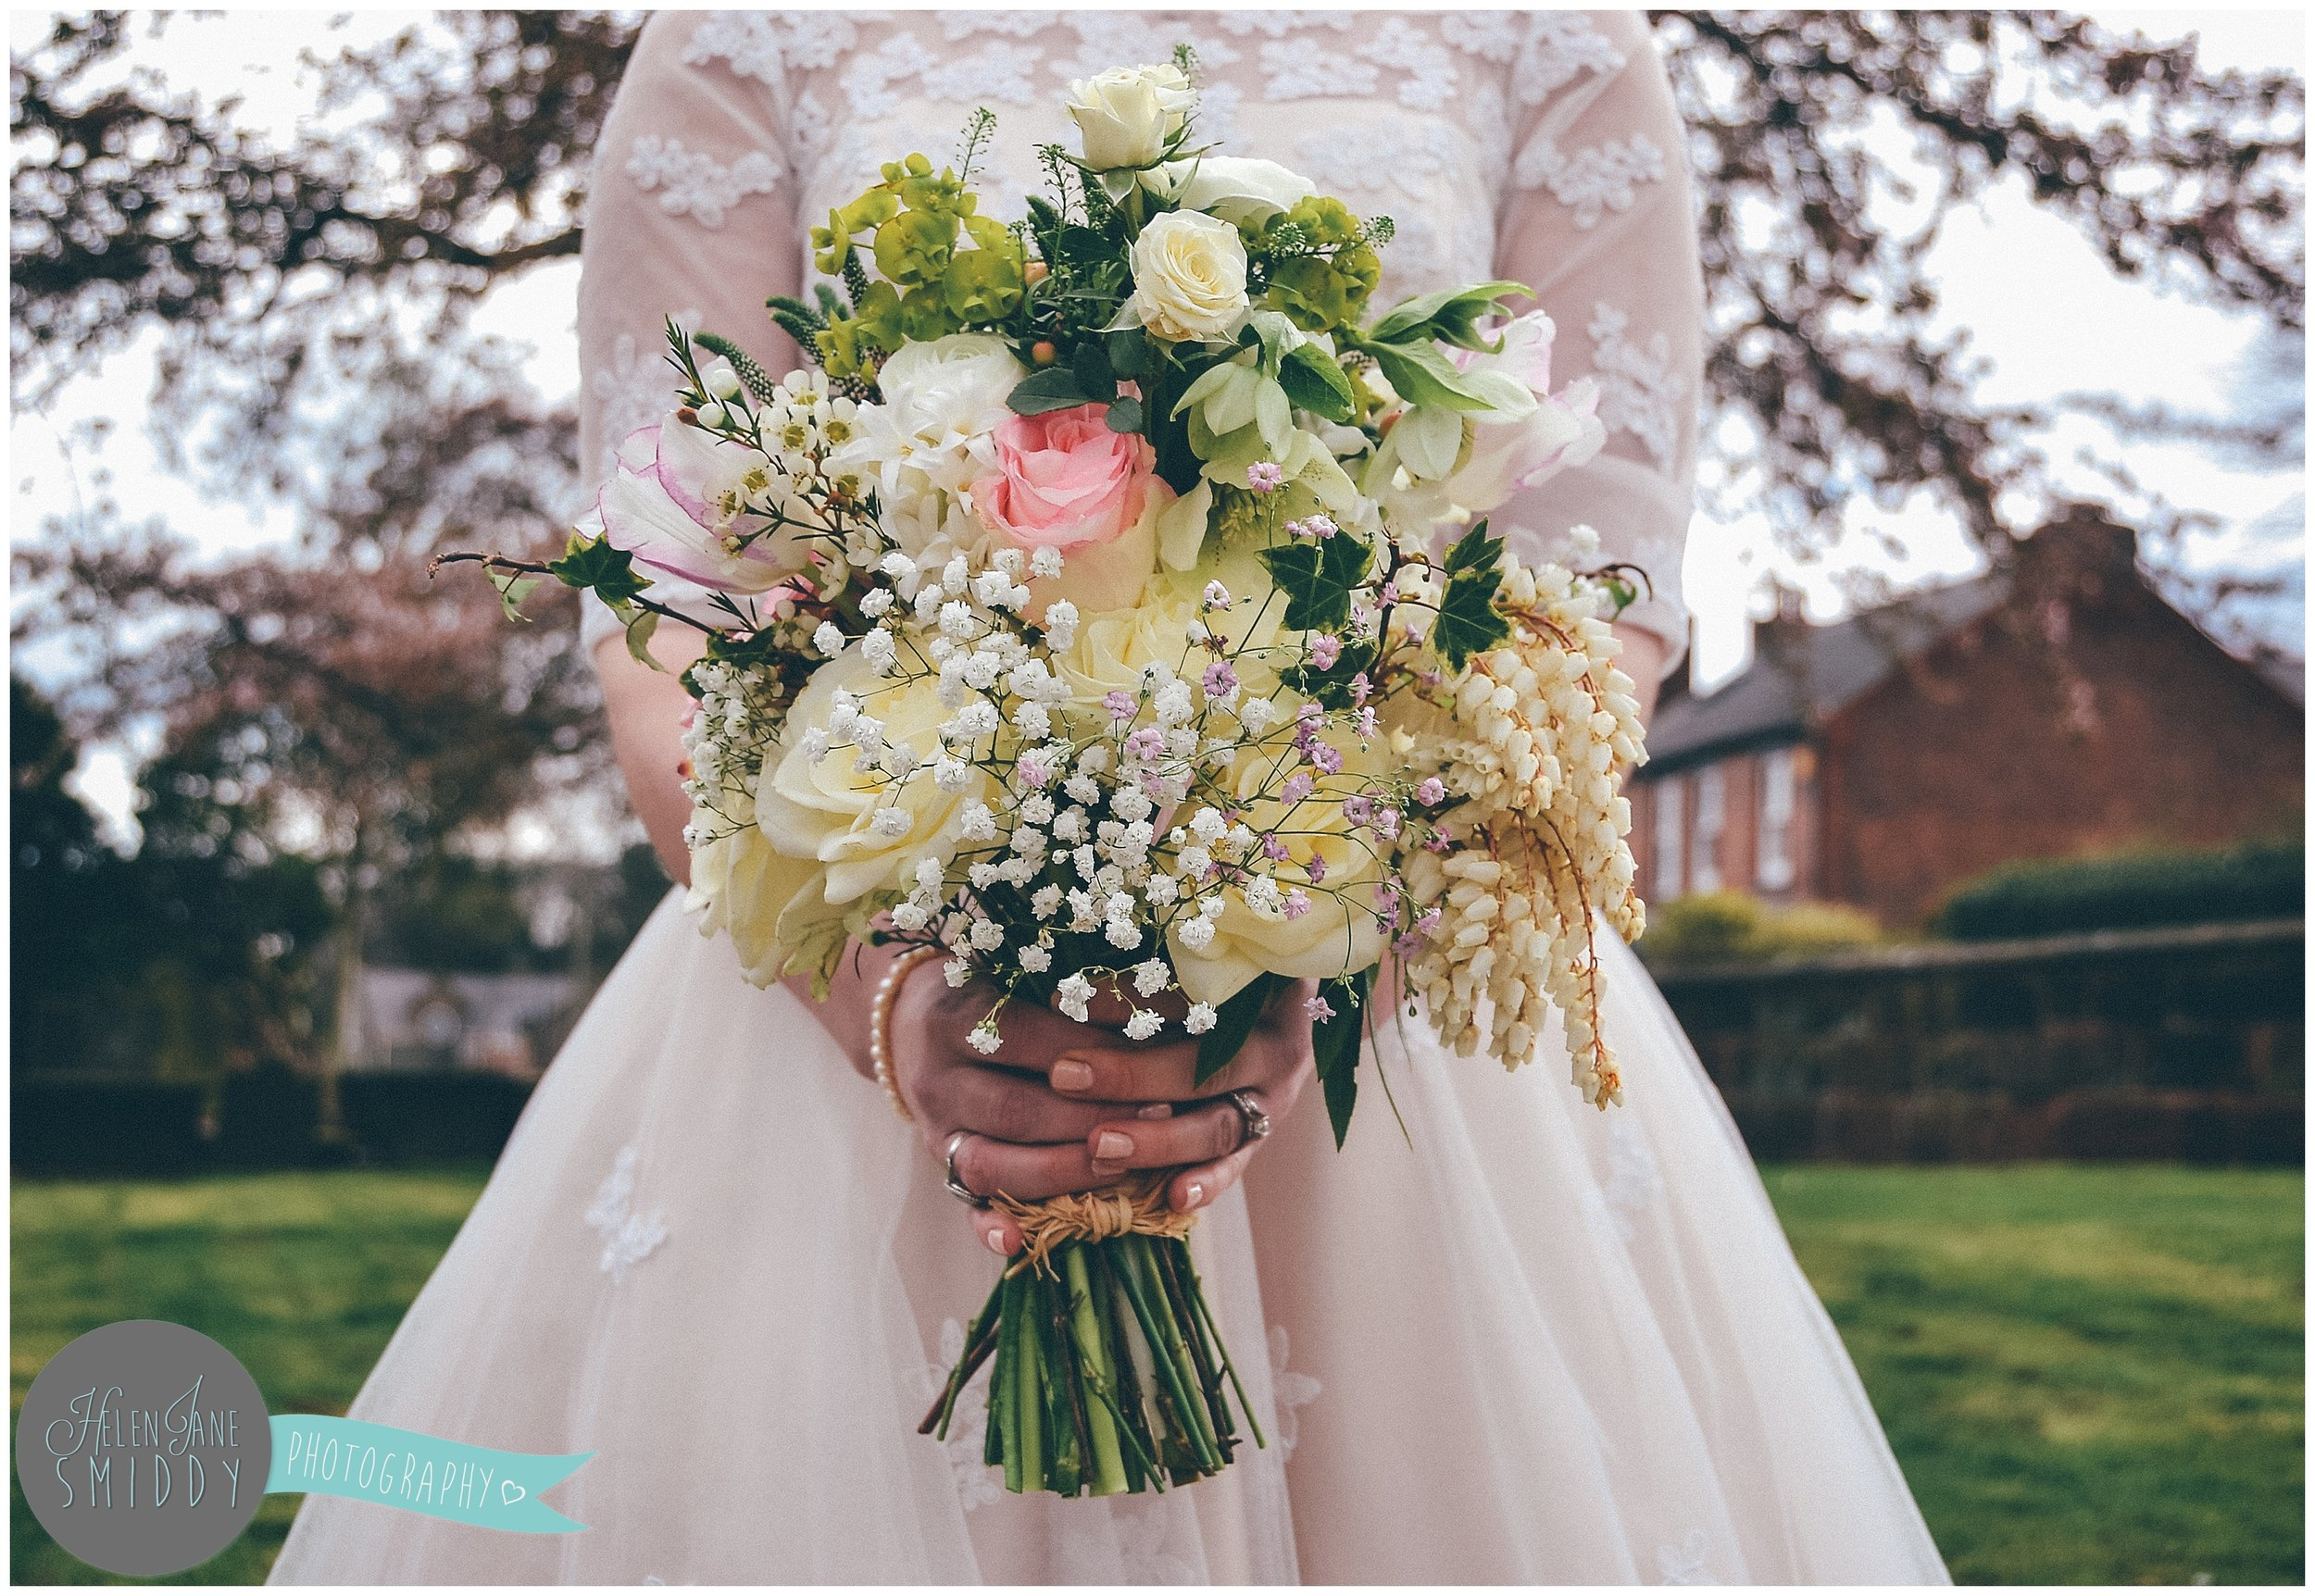 Incredible spring time wedding bouquet, held by the bride.